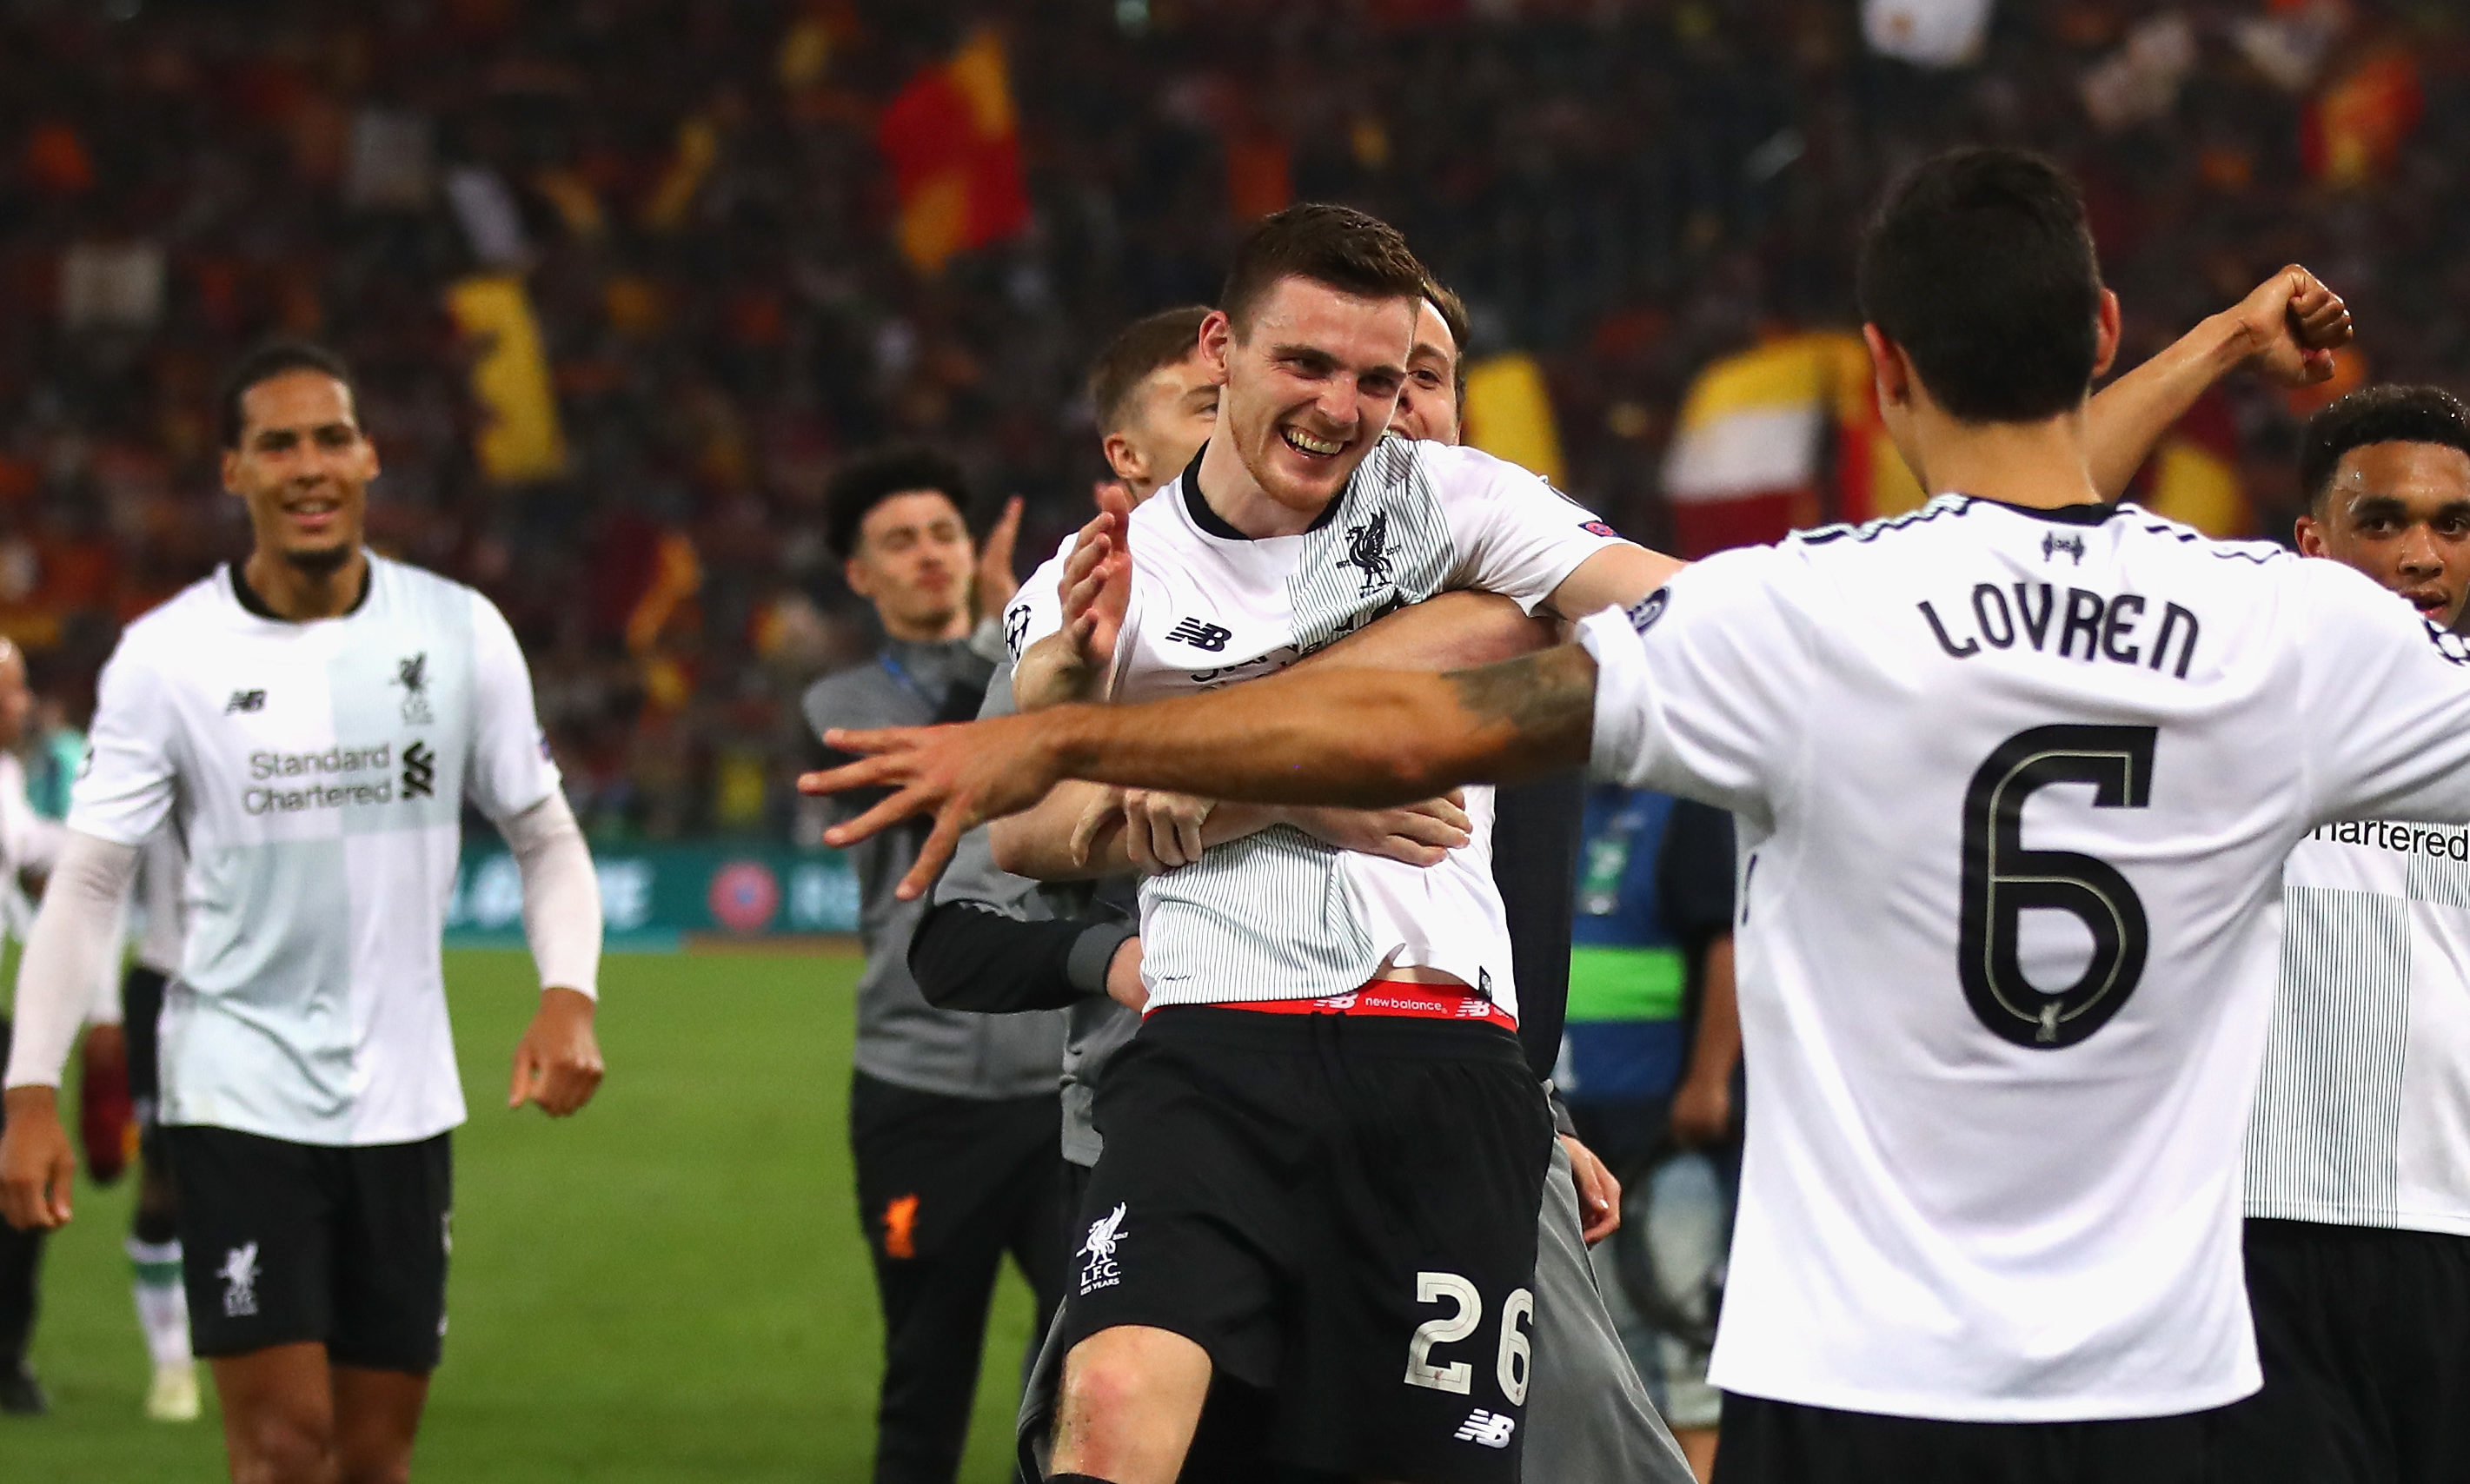 Andy Robertson of Liverpool and teammates celebrate after the full time whistle as Liverpool qualify for the Champions League Final